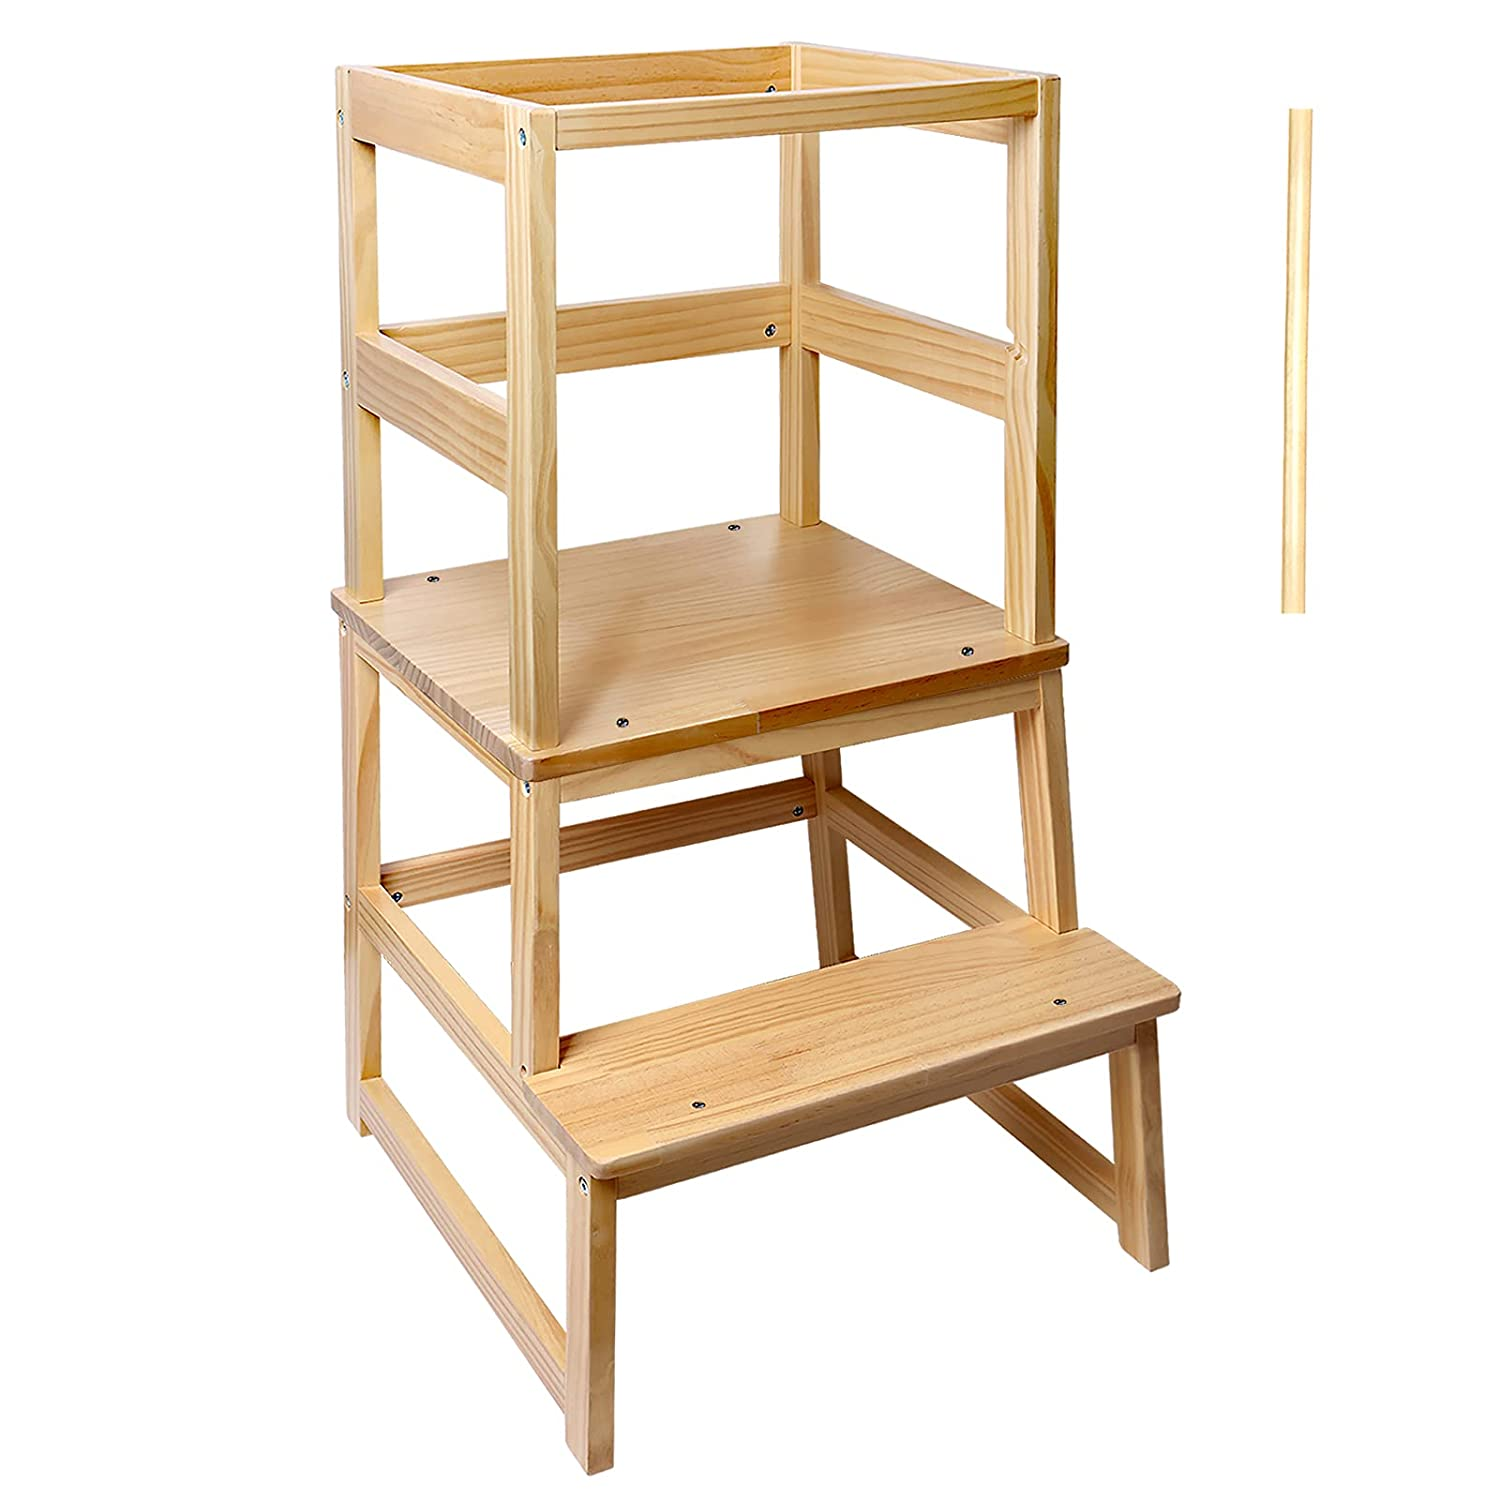 Solid Wood High Toddler Learning Tower Step Stool for Kids Fetching Footstool Ladder Lavatory Kitchen Helper Counter Washing Hands Woodgrain with Wide Pedal